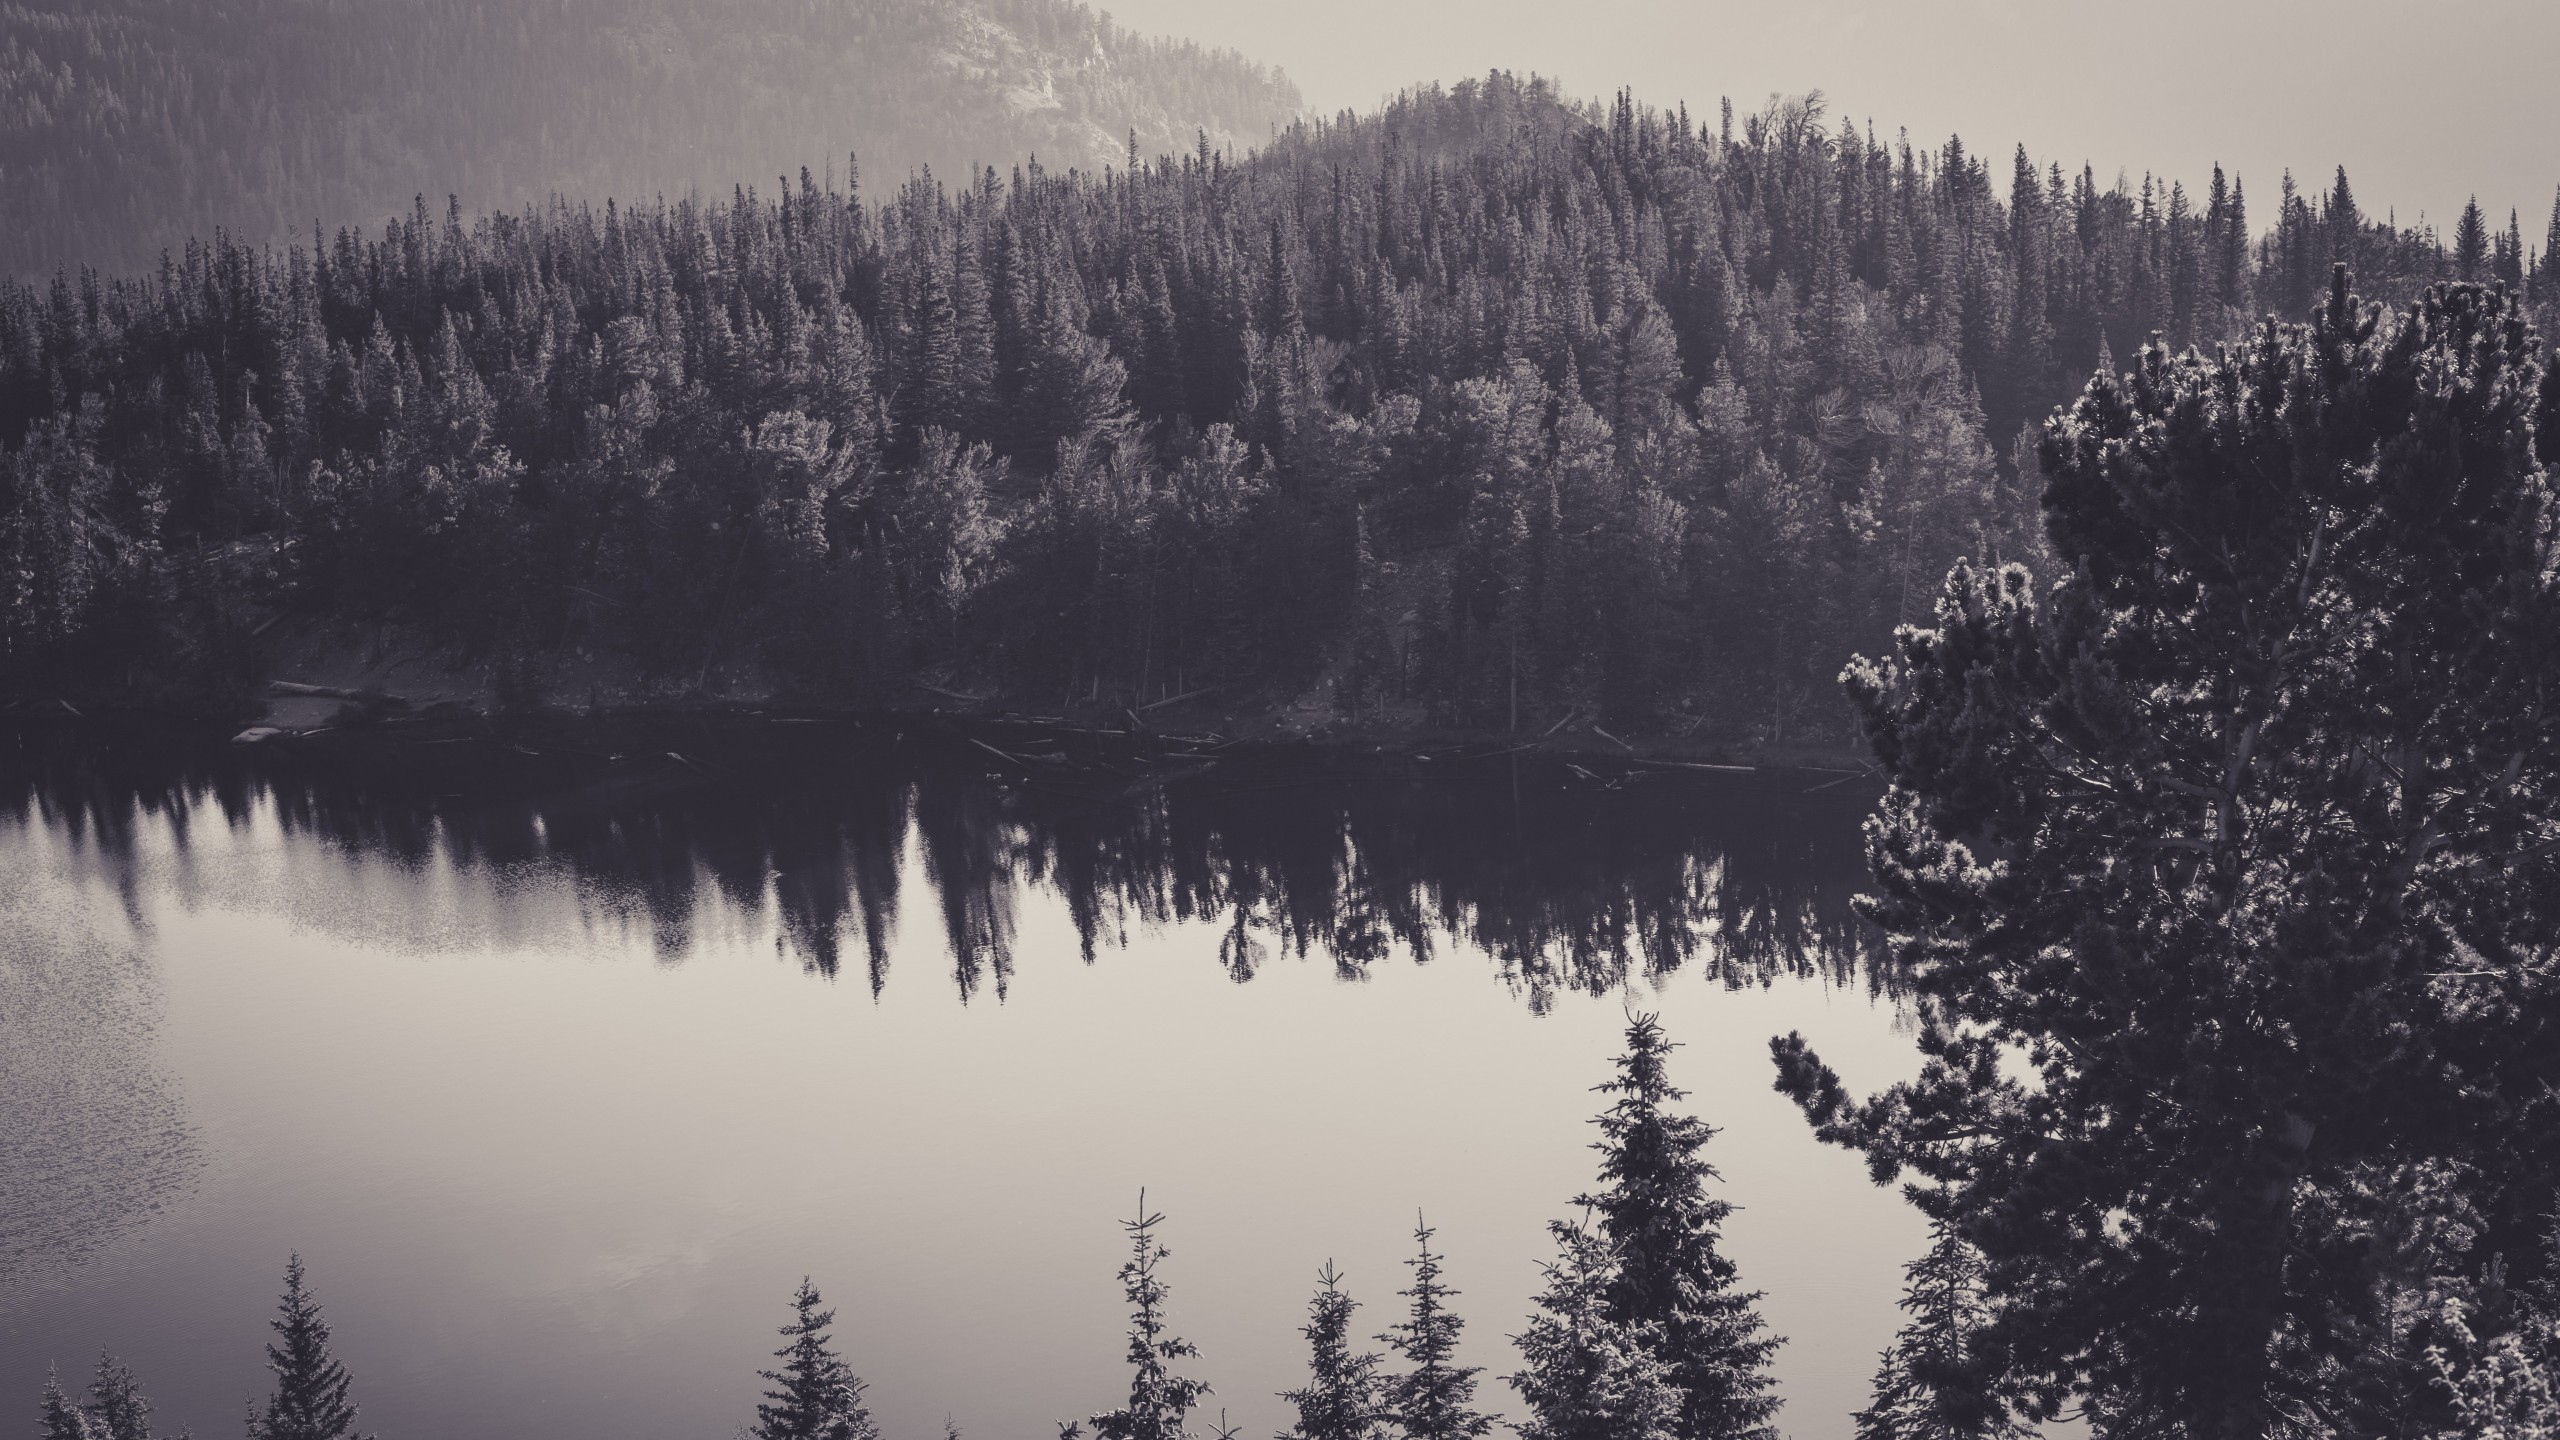 wallpaper.wiki-Black-and-White-Forest-2560×1440-High-